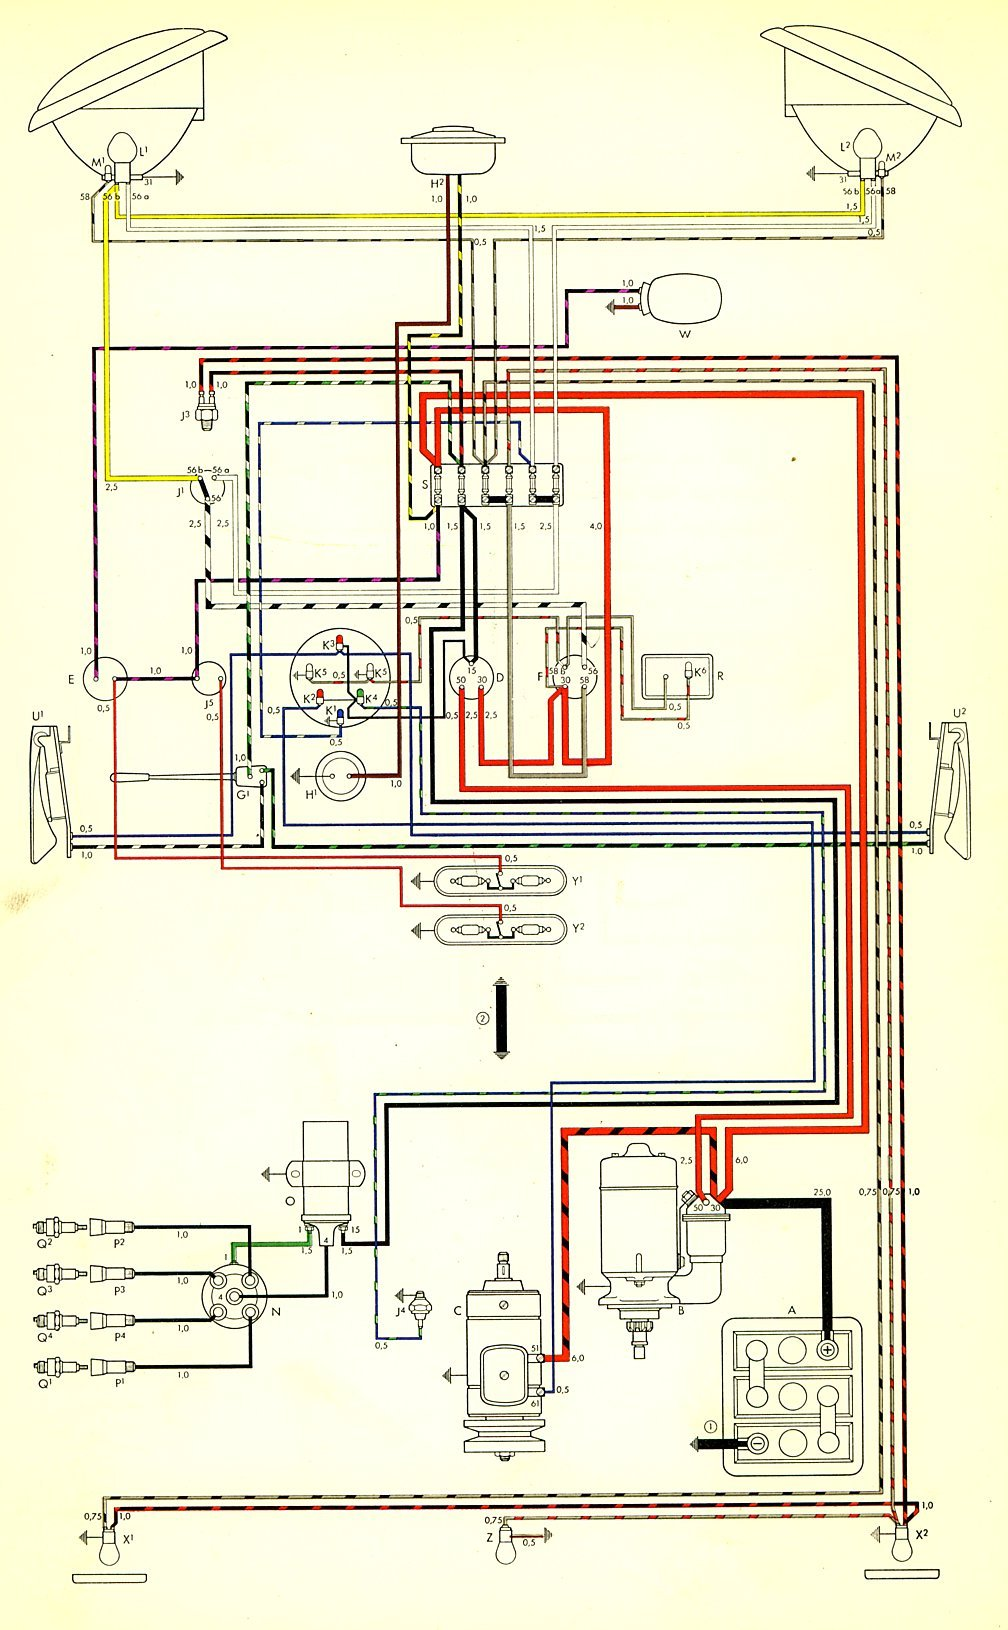 bus_59 1959 bus wiring diagram thegoldenbug com 74 vw bus wiring diagram at nearapp.co